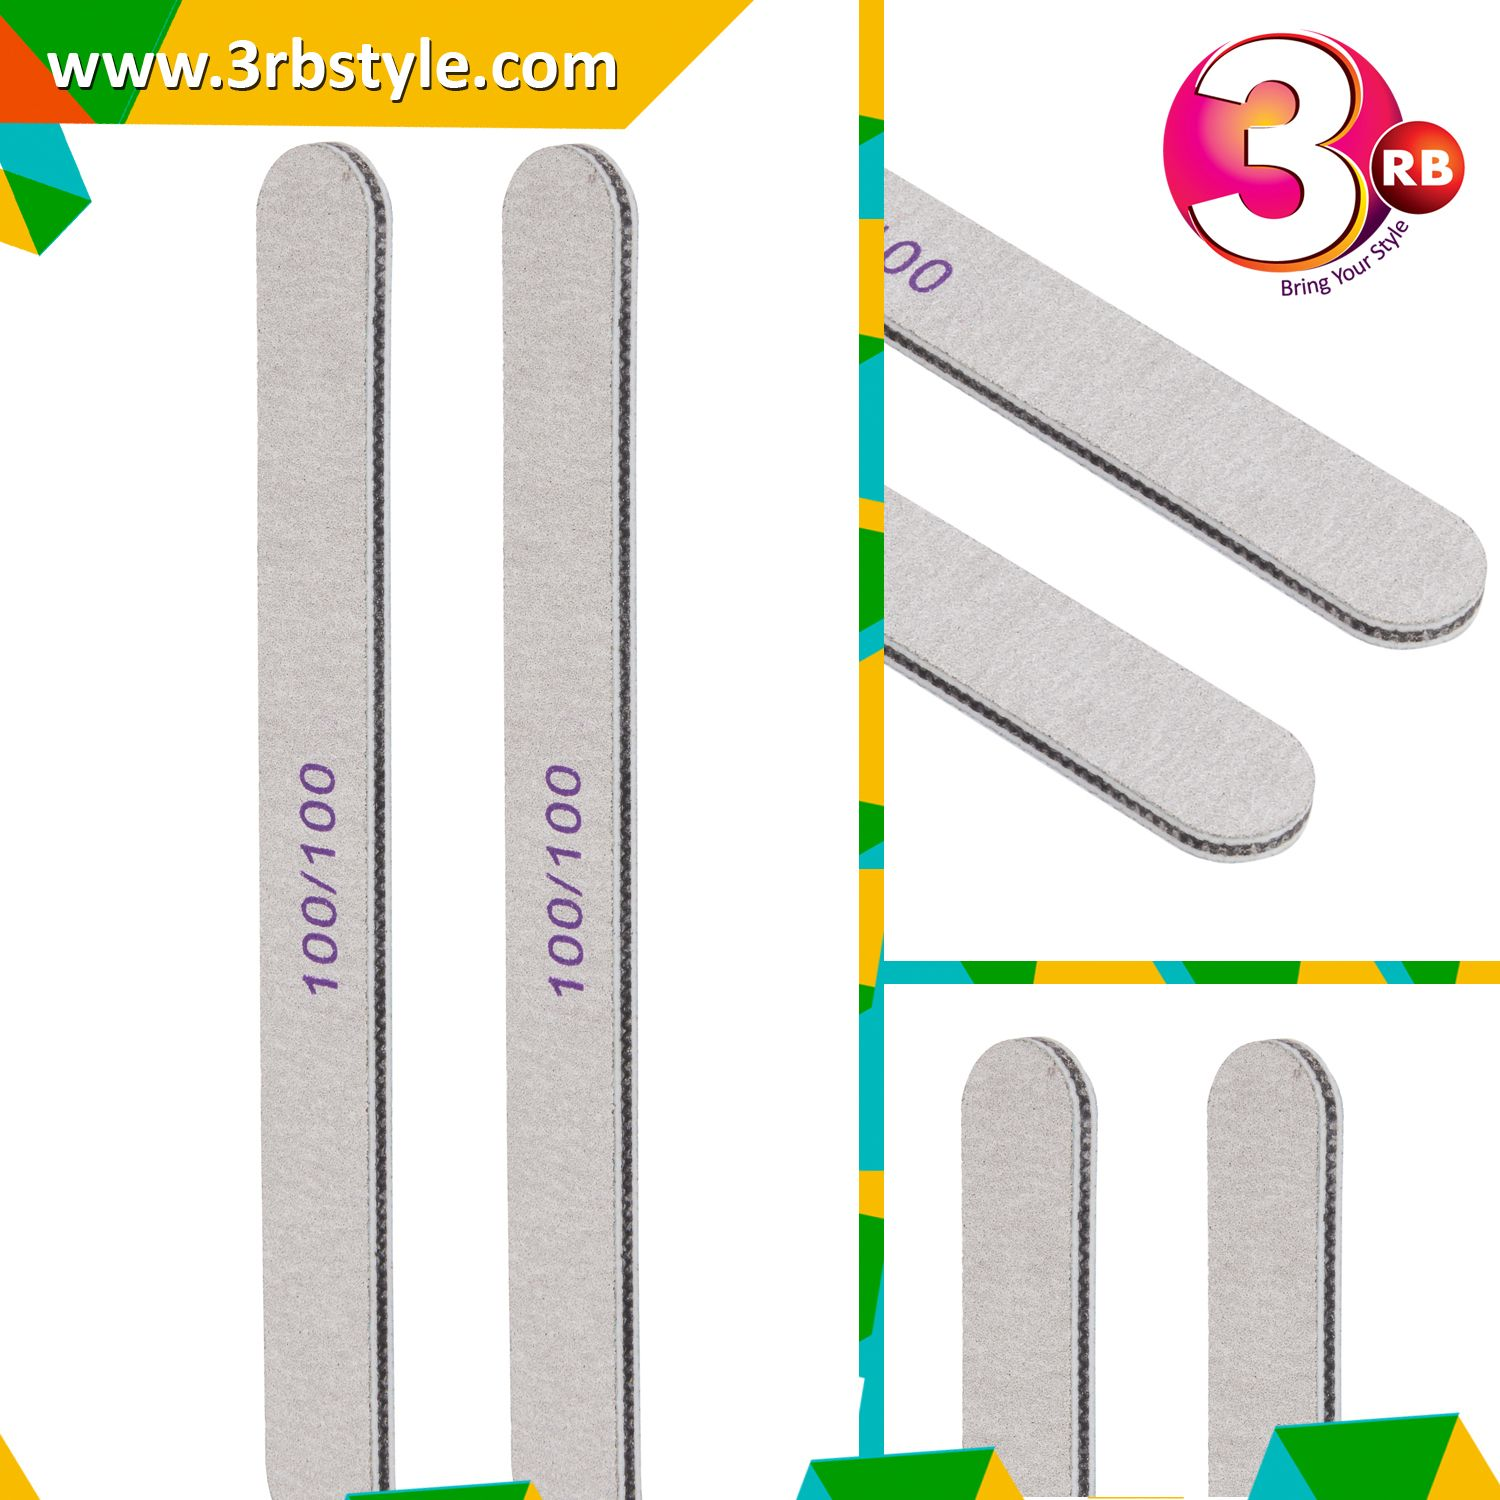 3rb - Emery Board Double Side Nail Filer (2 piece) | Pedicures ...